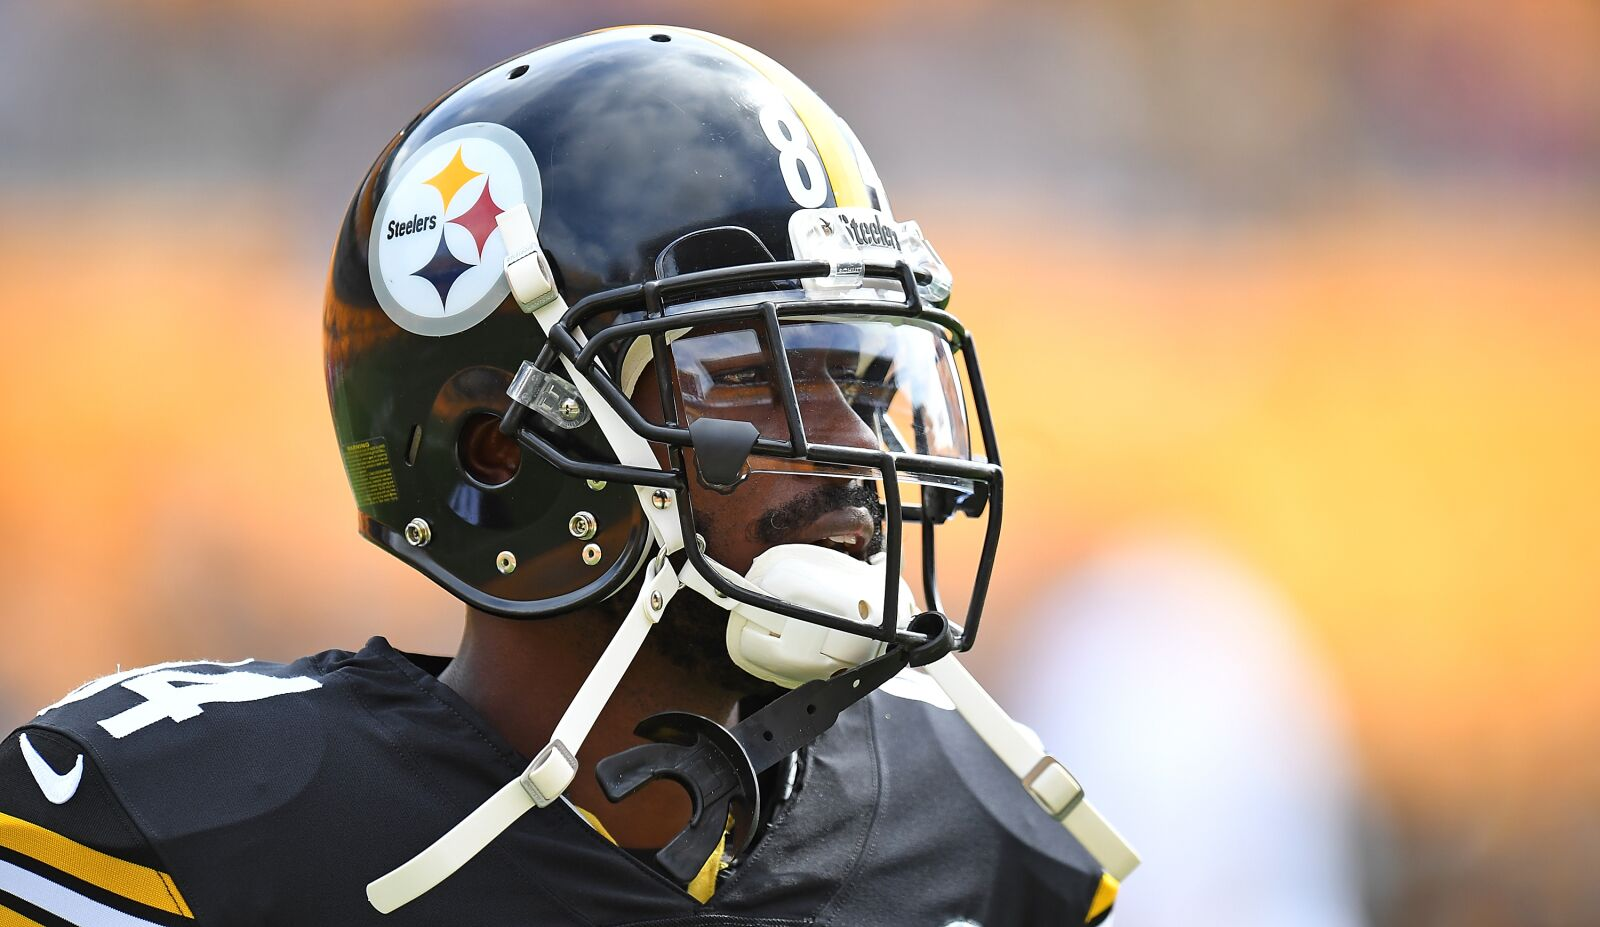 Antonio Brown has come out swinging against Ben Roethlisberger